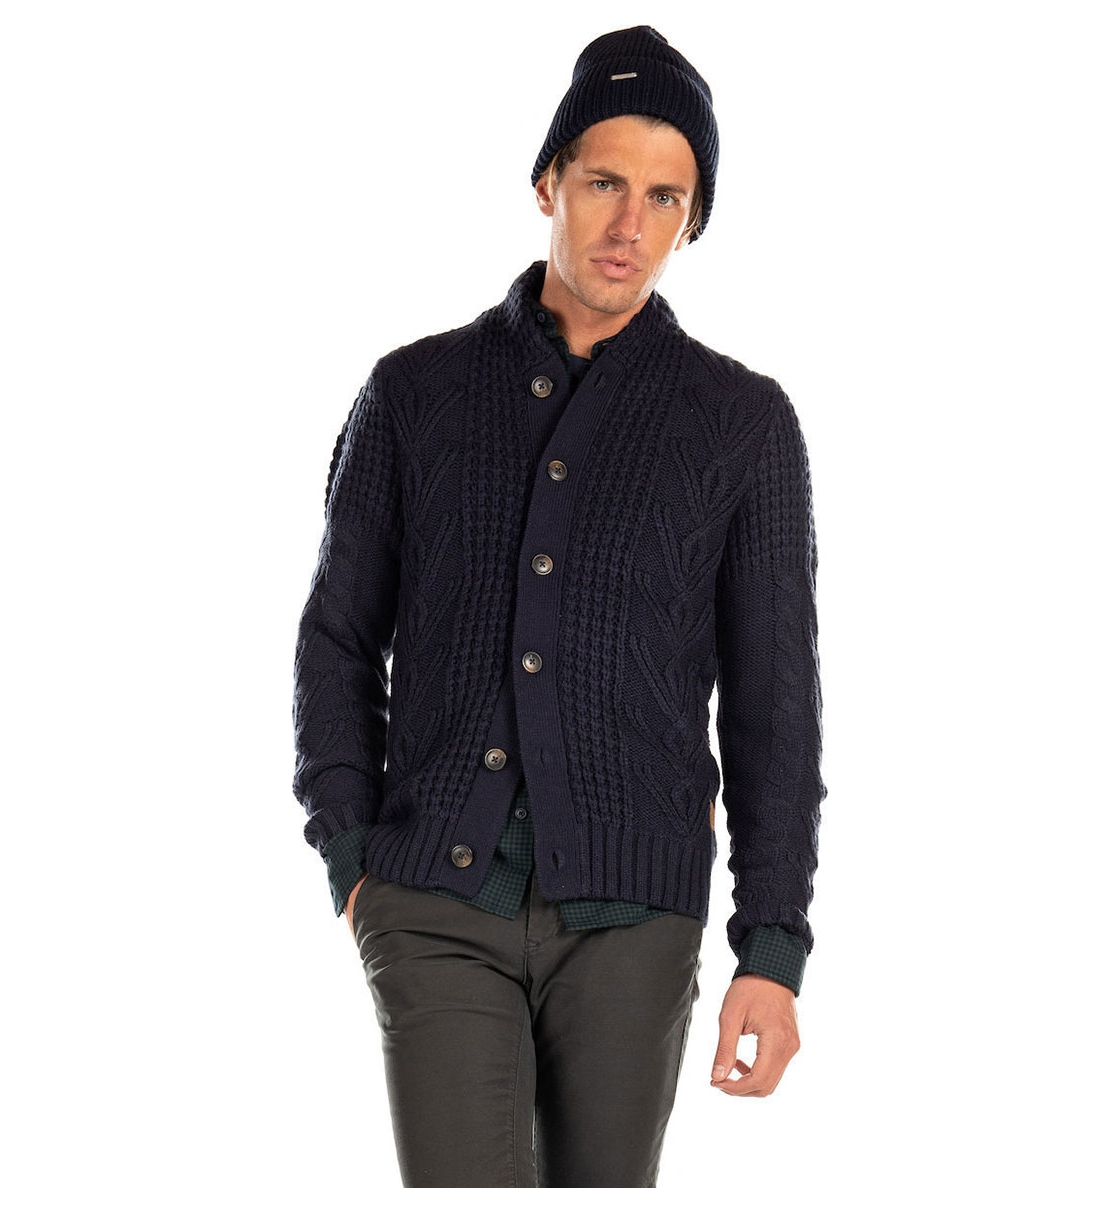 Jack & Jones Fw19 Jorkenny Knit Cardigan